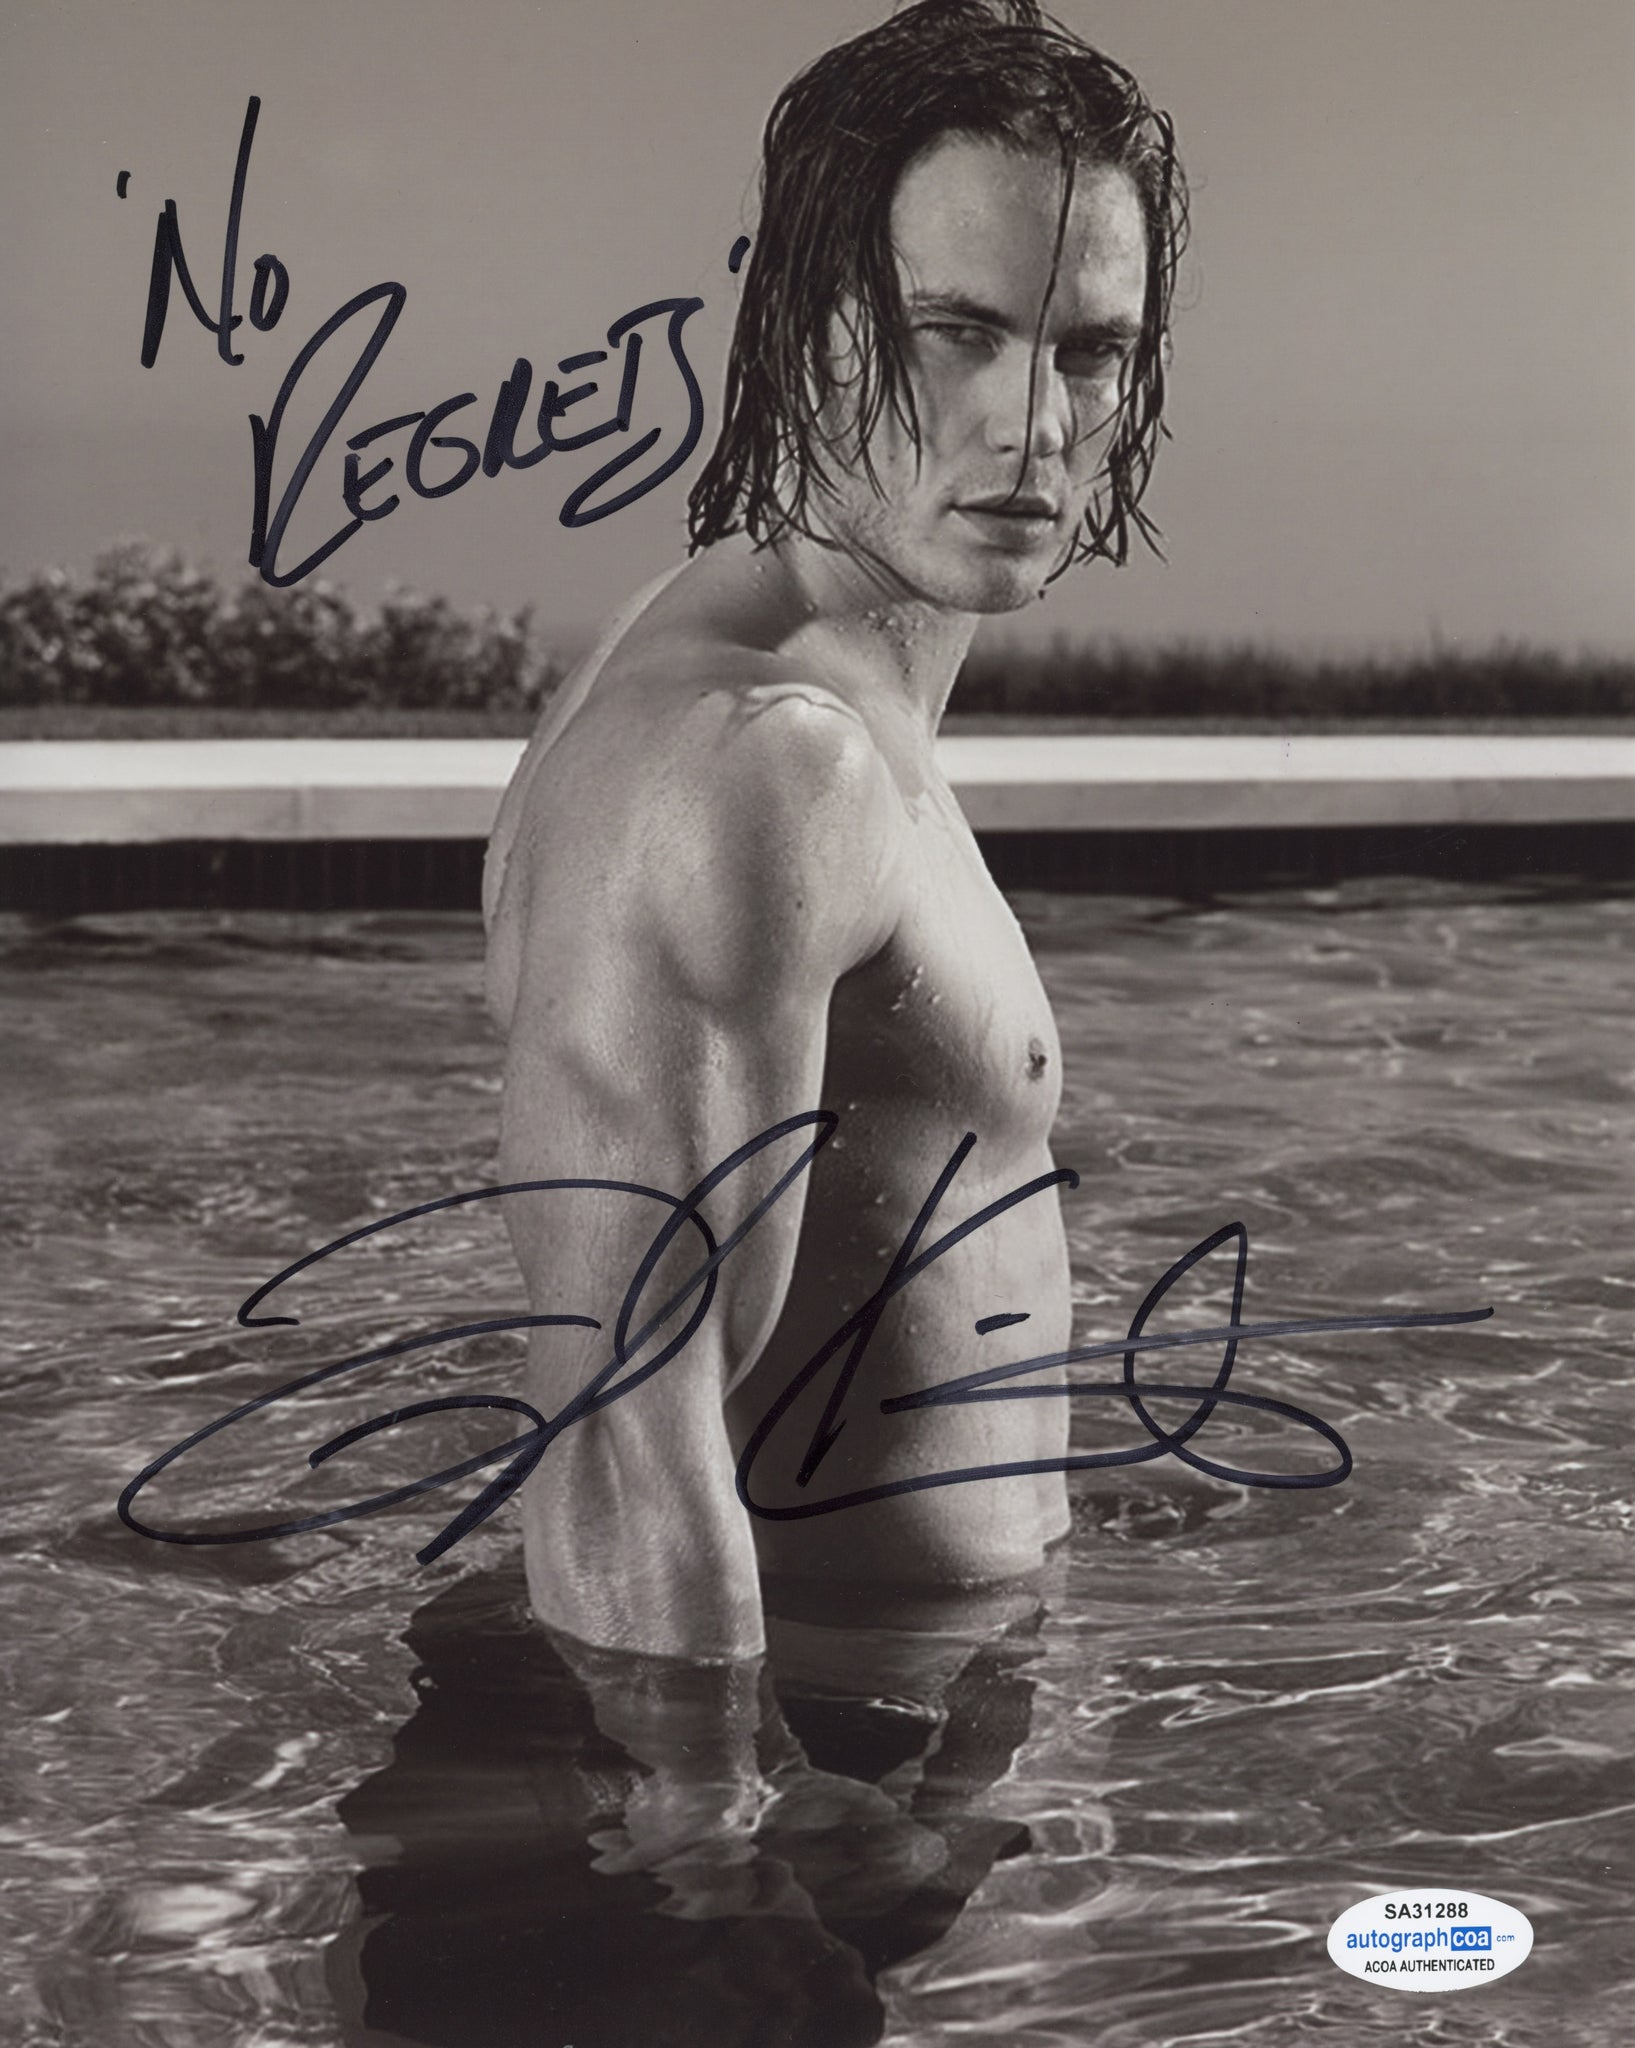 Taylor Kitsch Friday Night Lights Signed Autograph 8x10 Photo ACOA #6 - Outlaw Hobbies Authentic Autographs